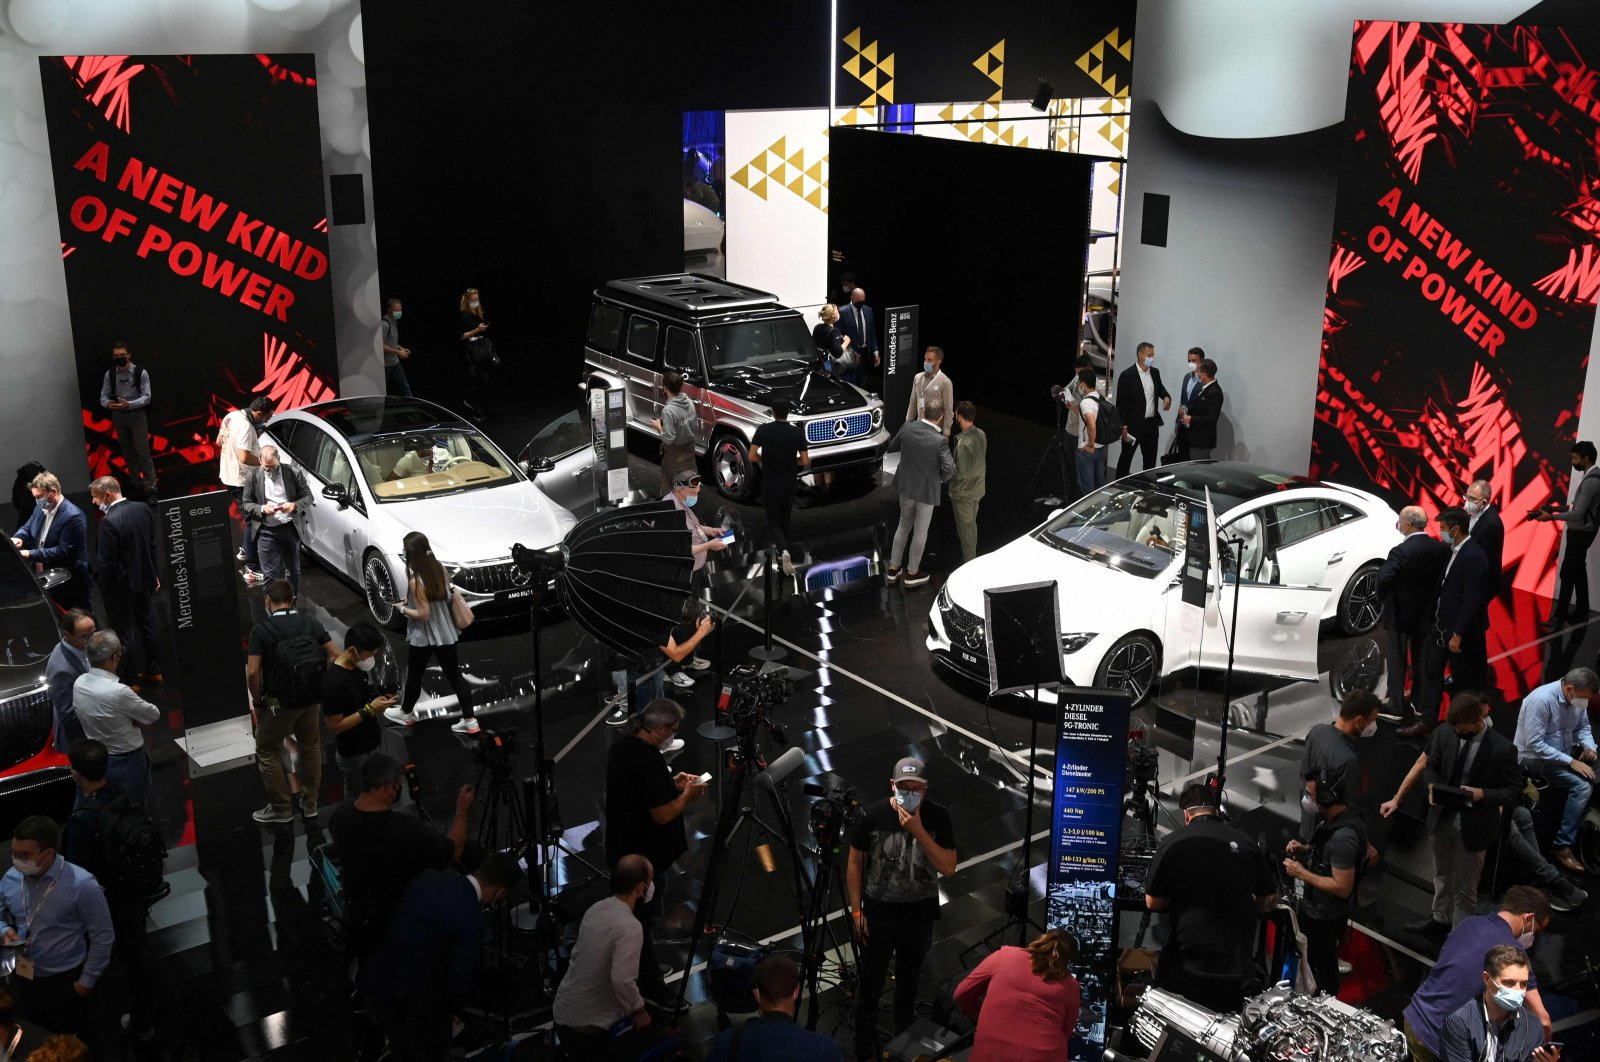 Fairgoers inspect Mercedes cars during a press preview at the International Motor Show (IAA), in Munich, southern Germany, Sept. 6, 2021. (AFP Photo)